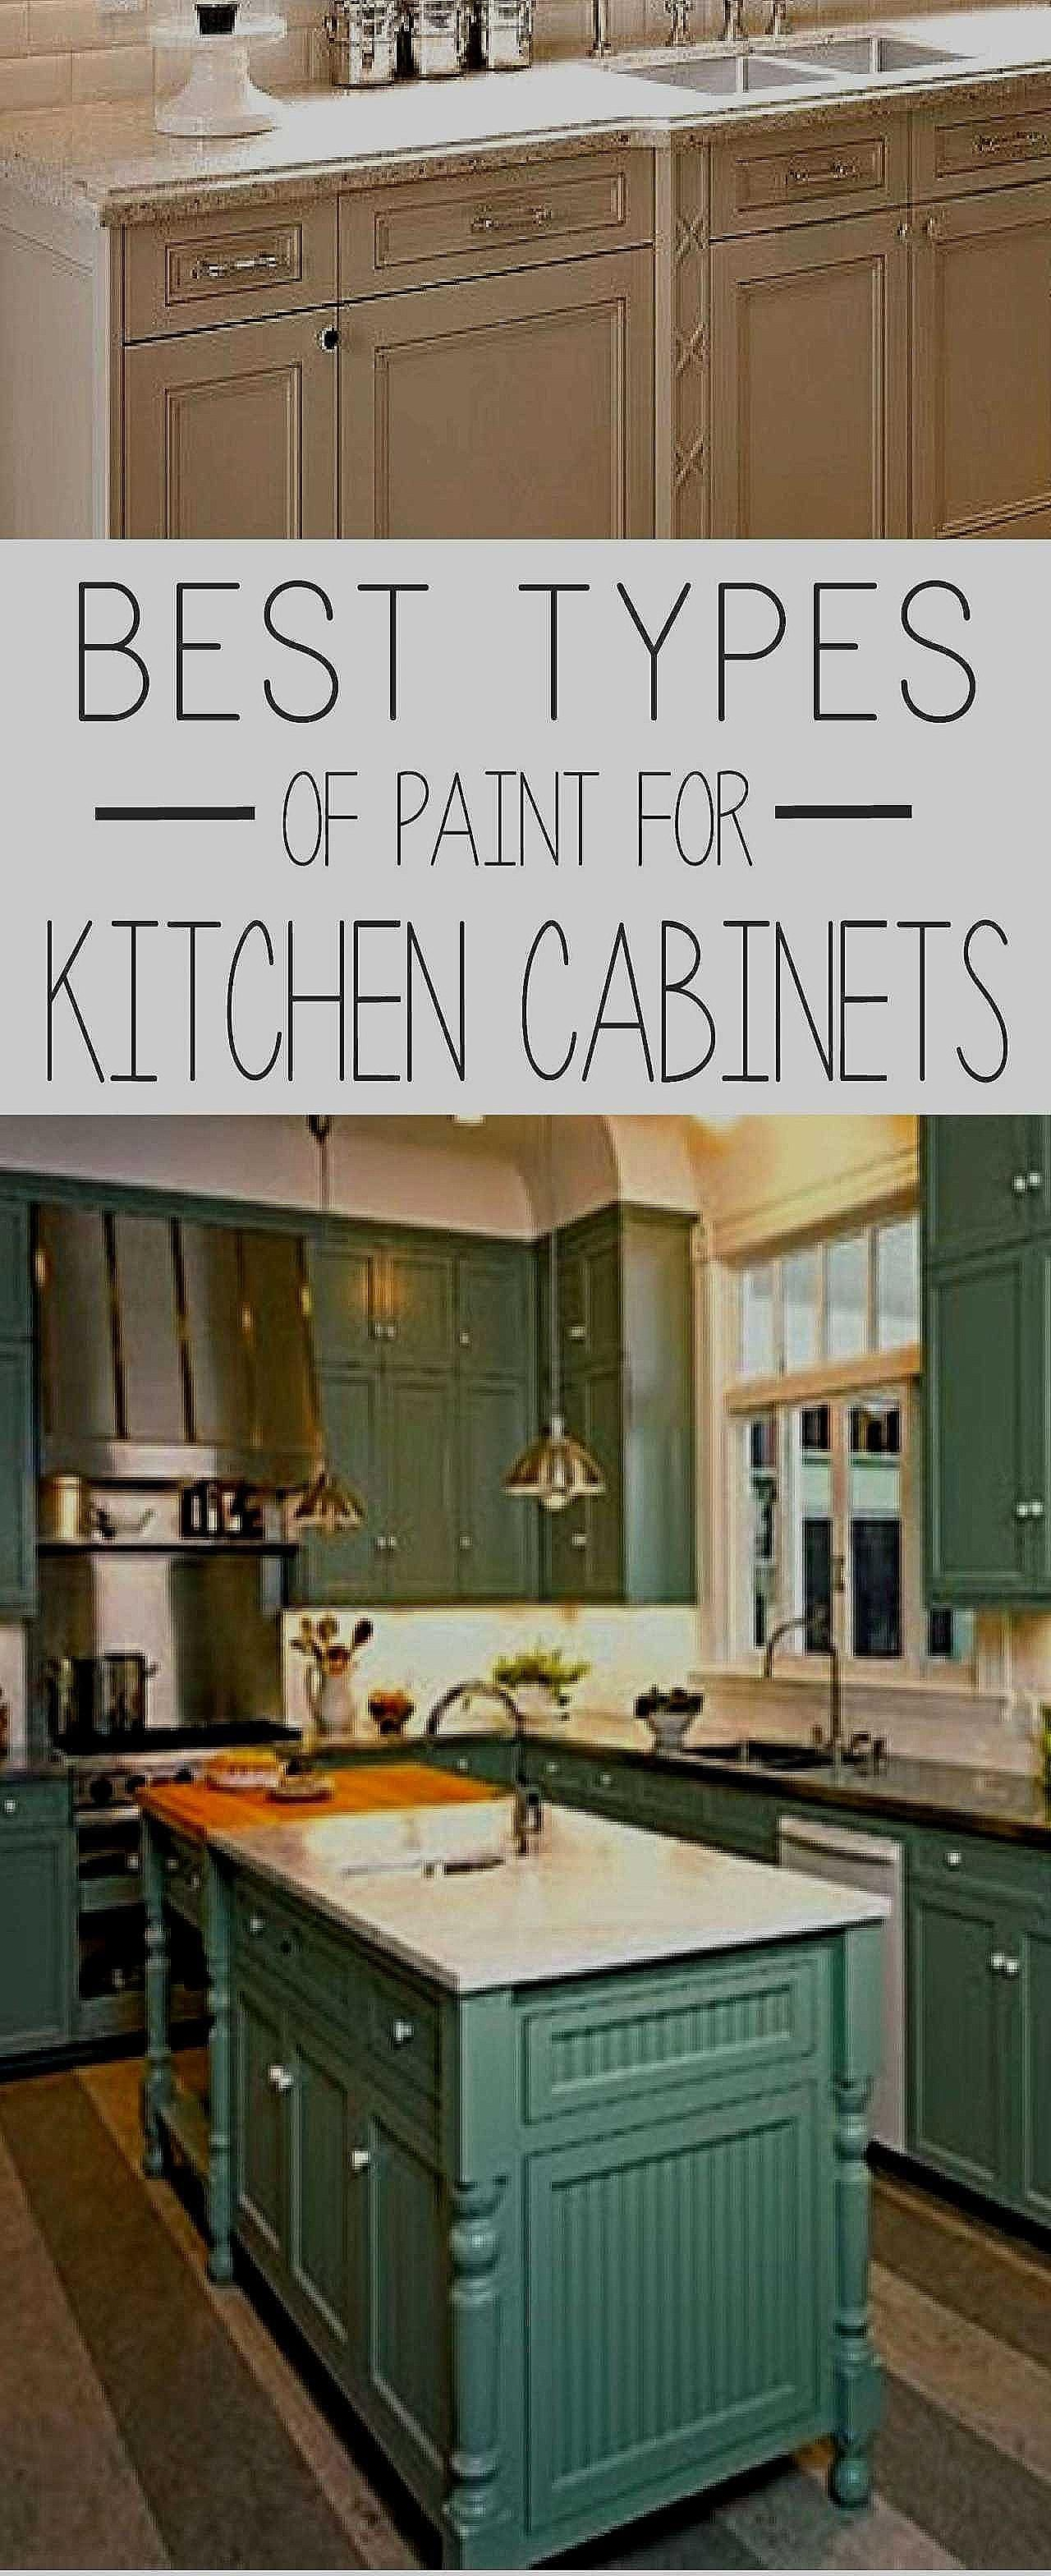 Awesome Luxury Painting Kitchen Cabinets Ideas Rustic Country Kitchen Decor Interior Design Kitchen Country Kitchen Decor